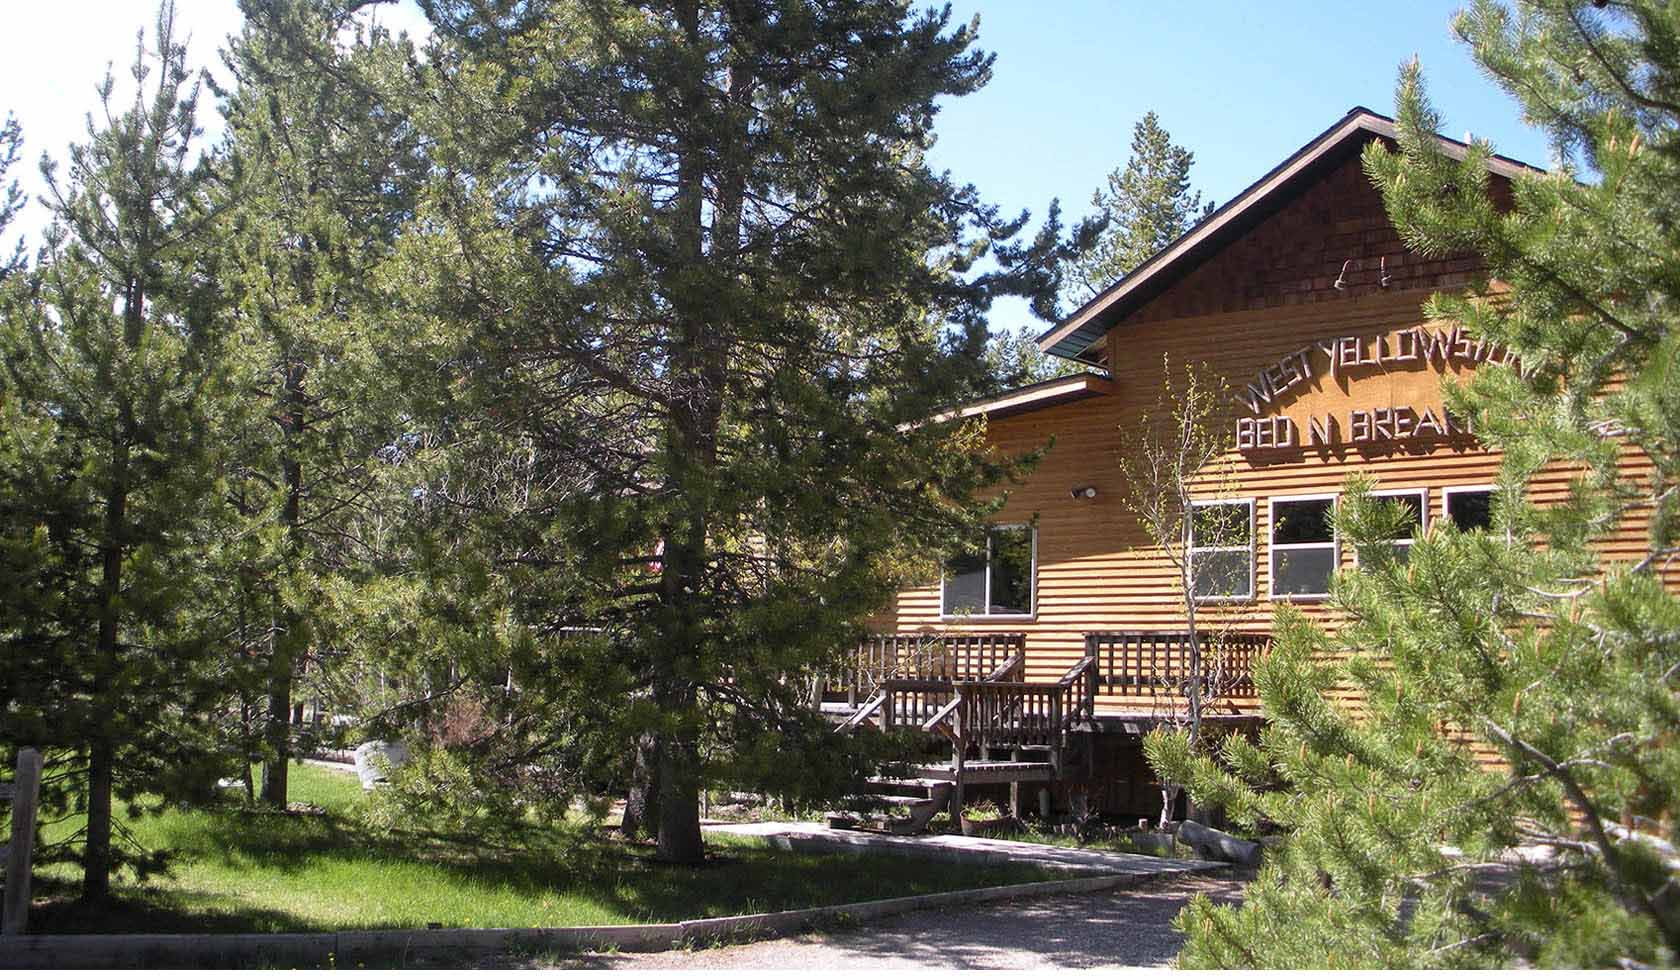 West Yellowstone Bed & Breakfast profile image